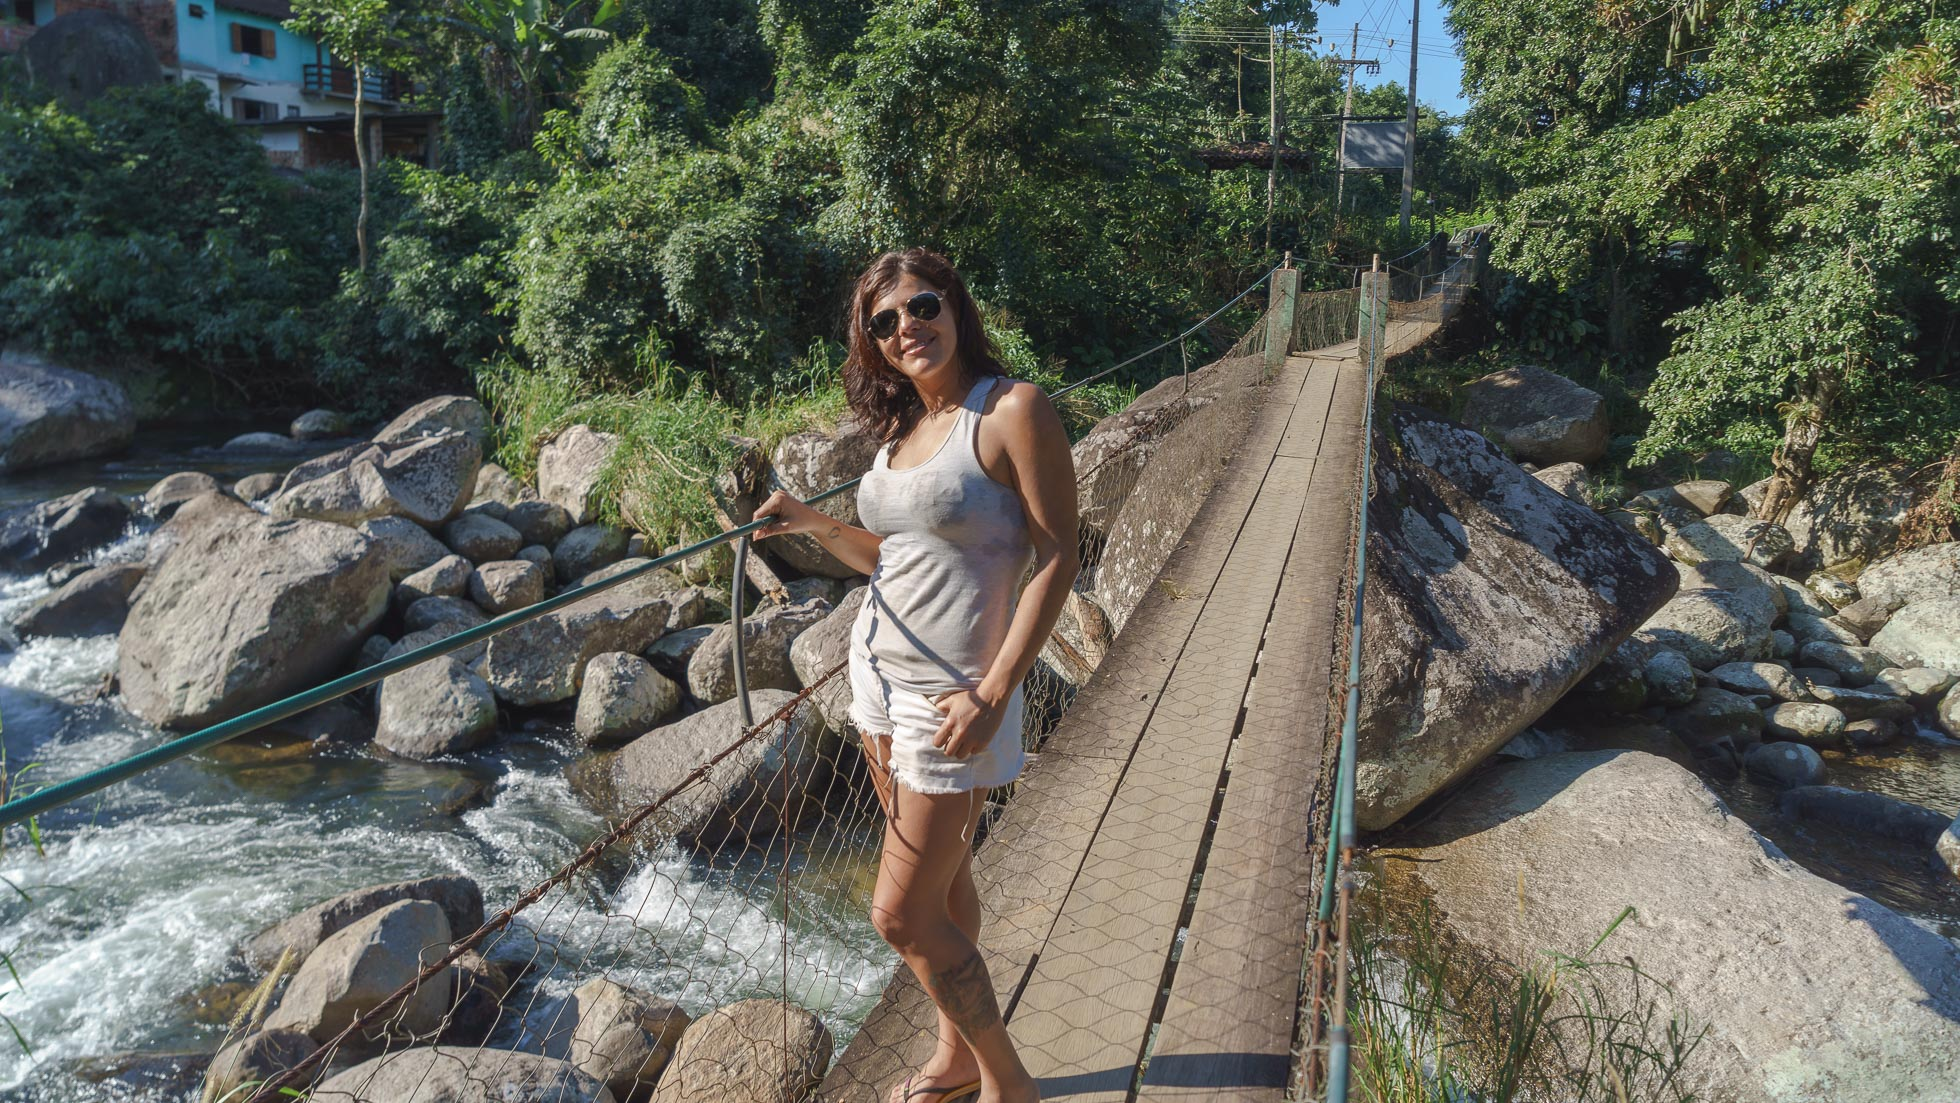 Lesvoyageuses-paraty-bresil-guide-voyage-152